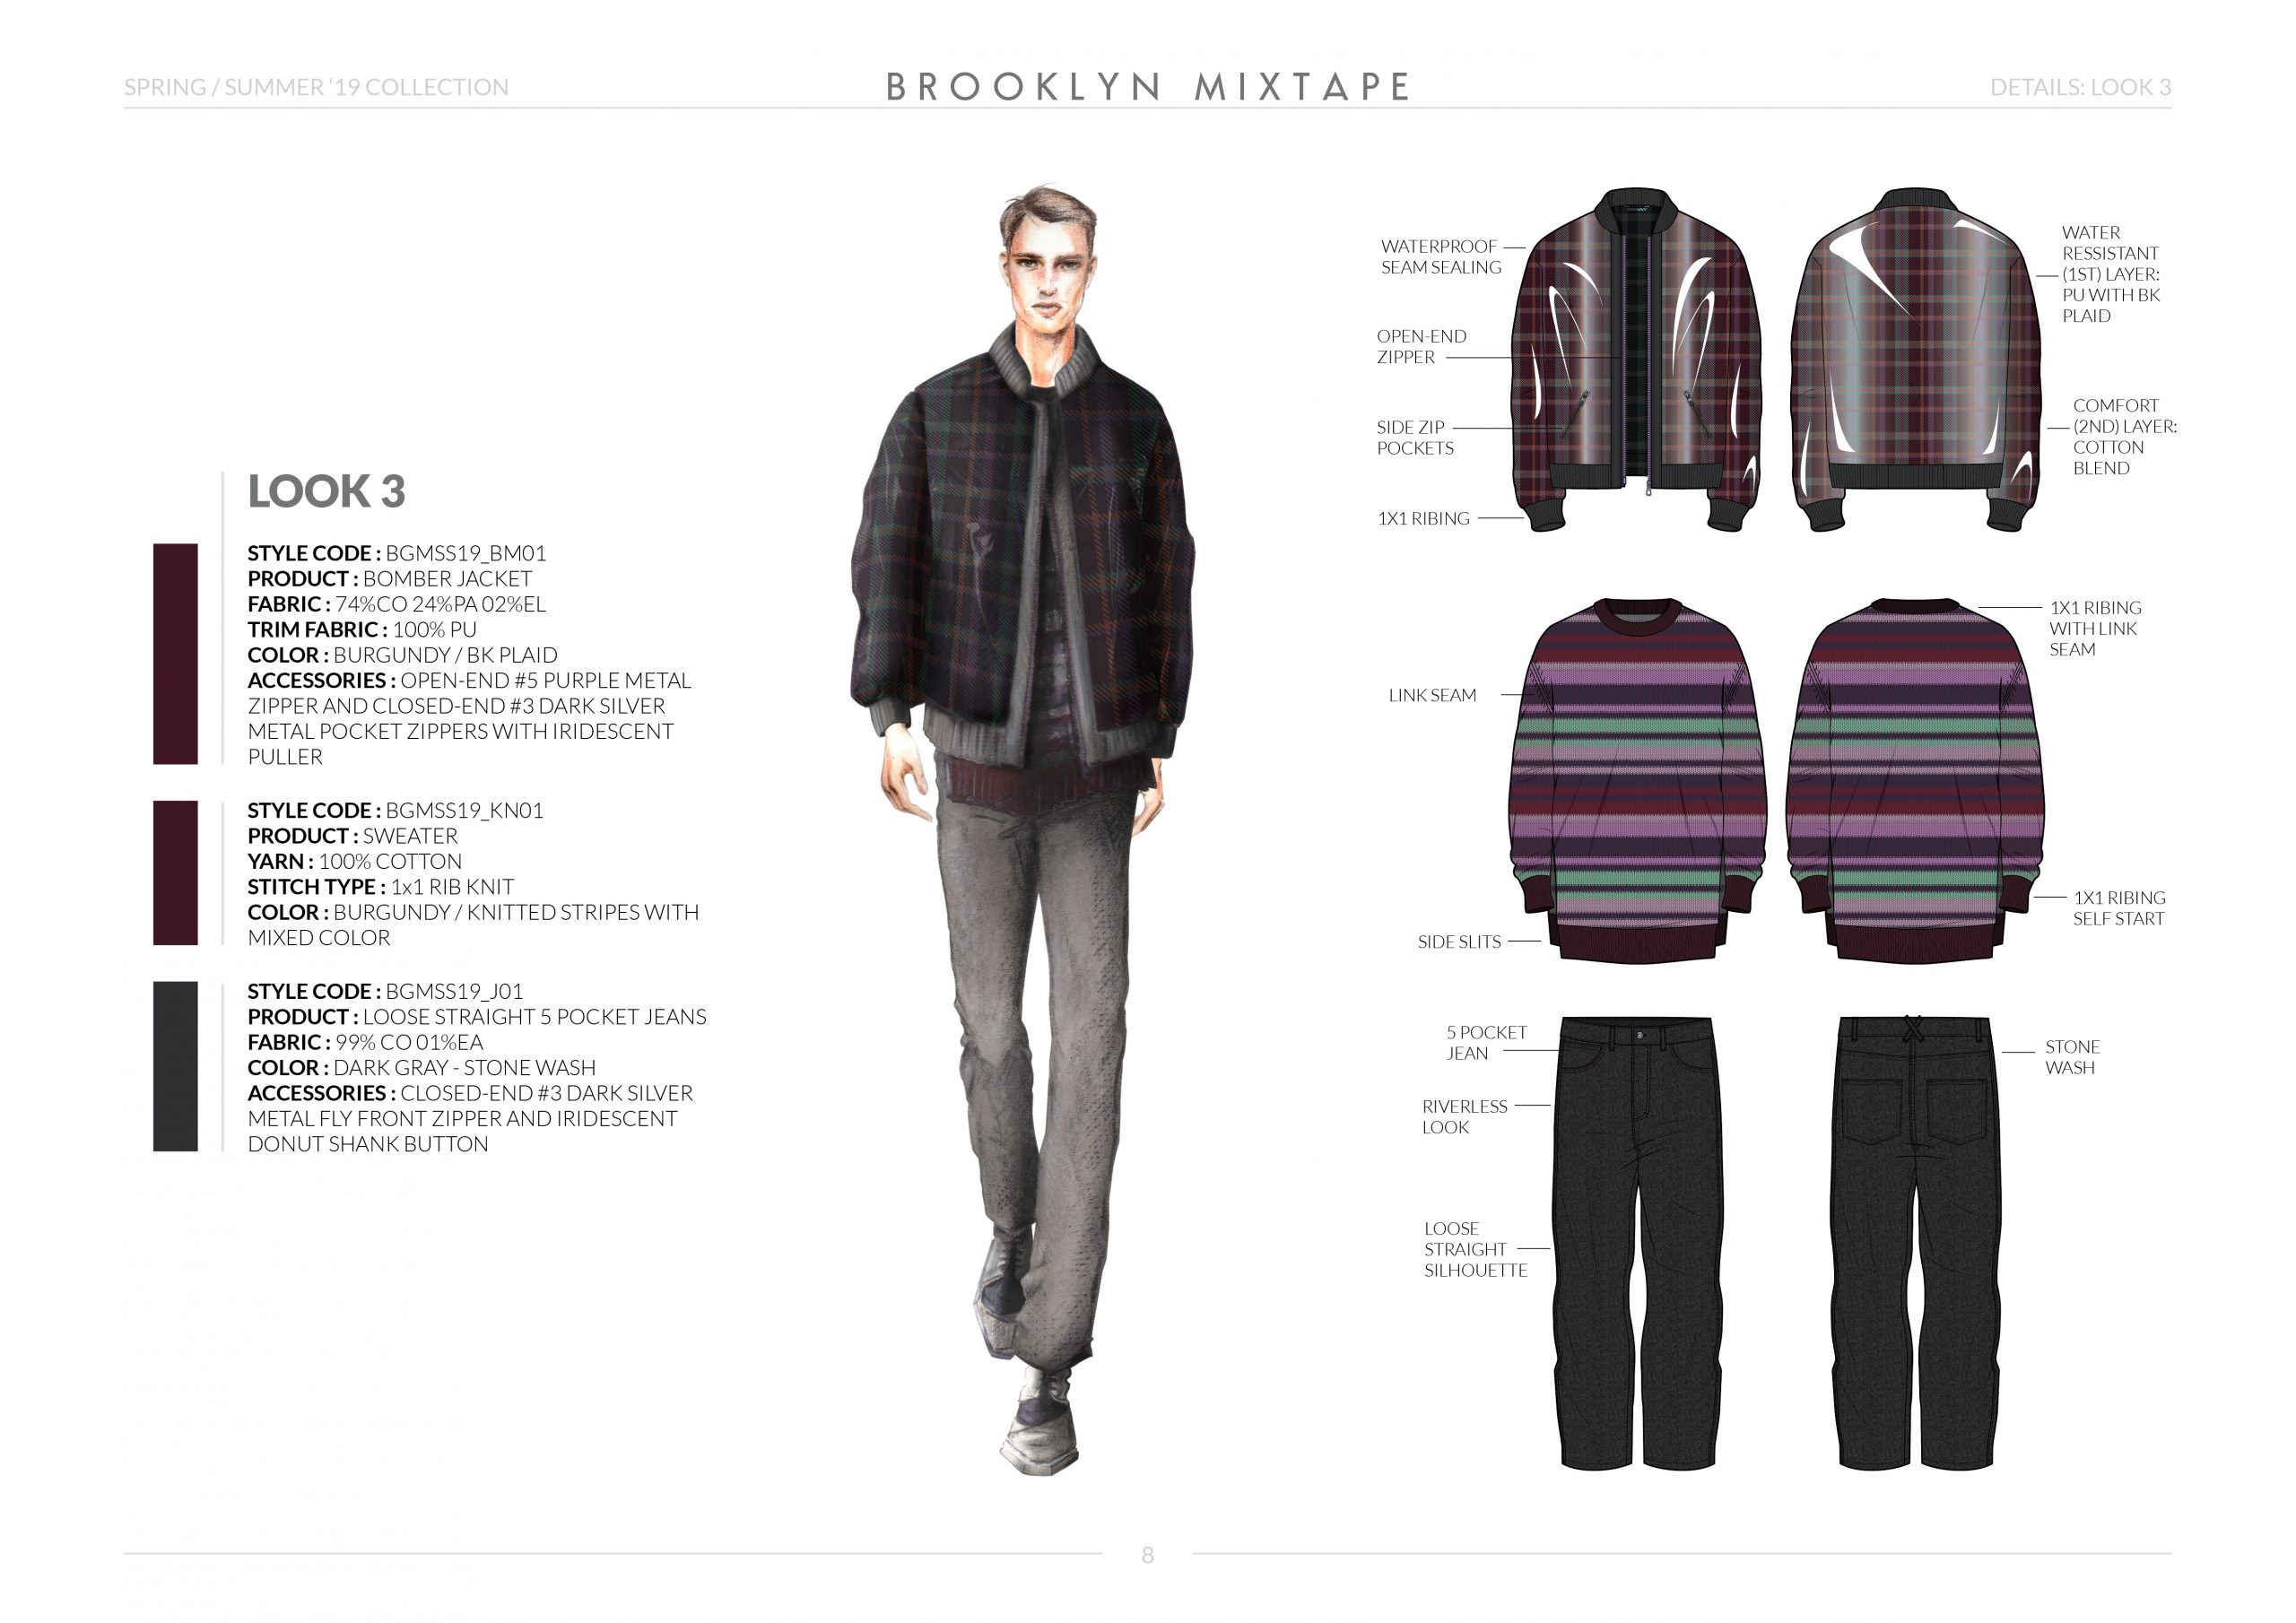 Spring-Summer-19 Mens Collection Details: Look 3